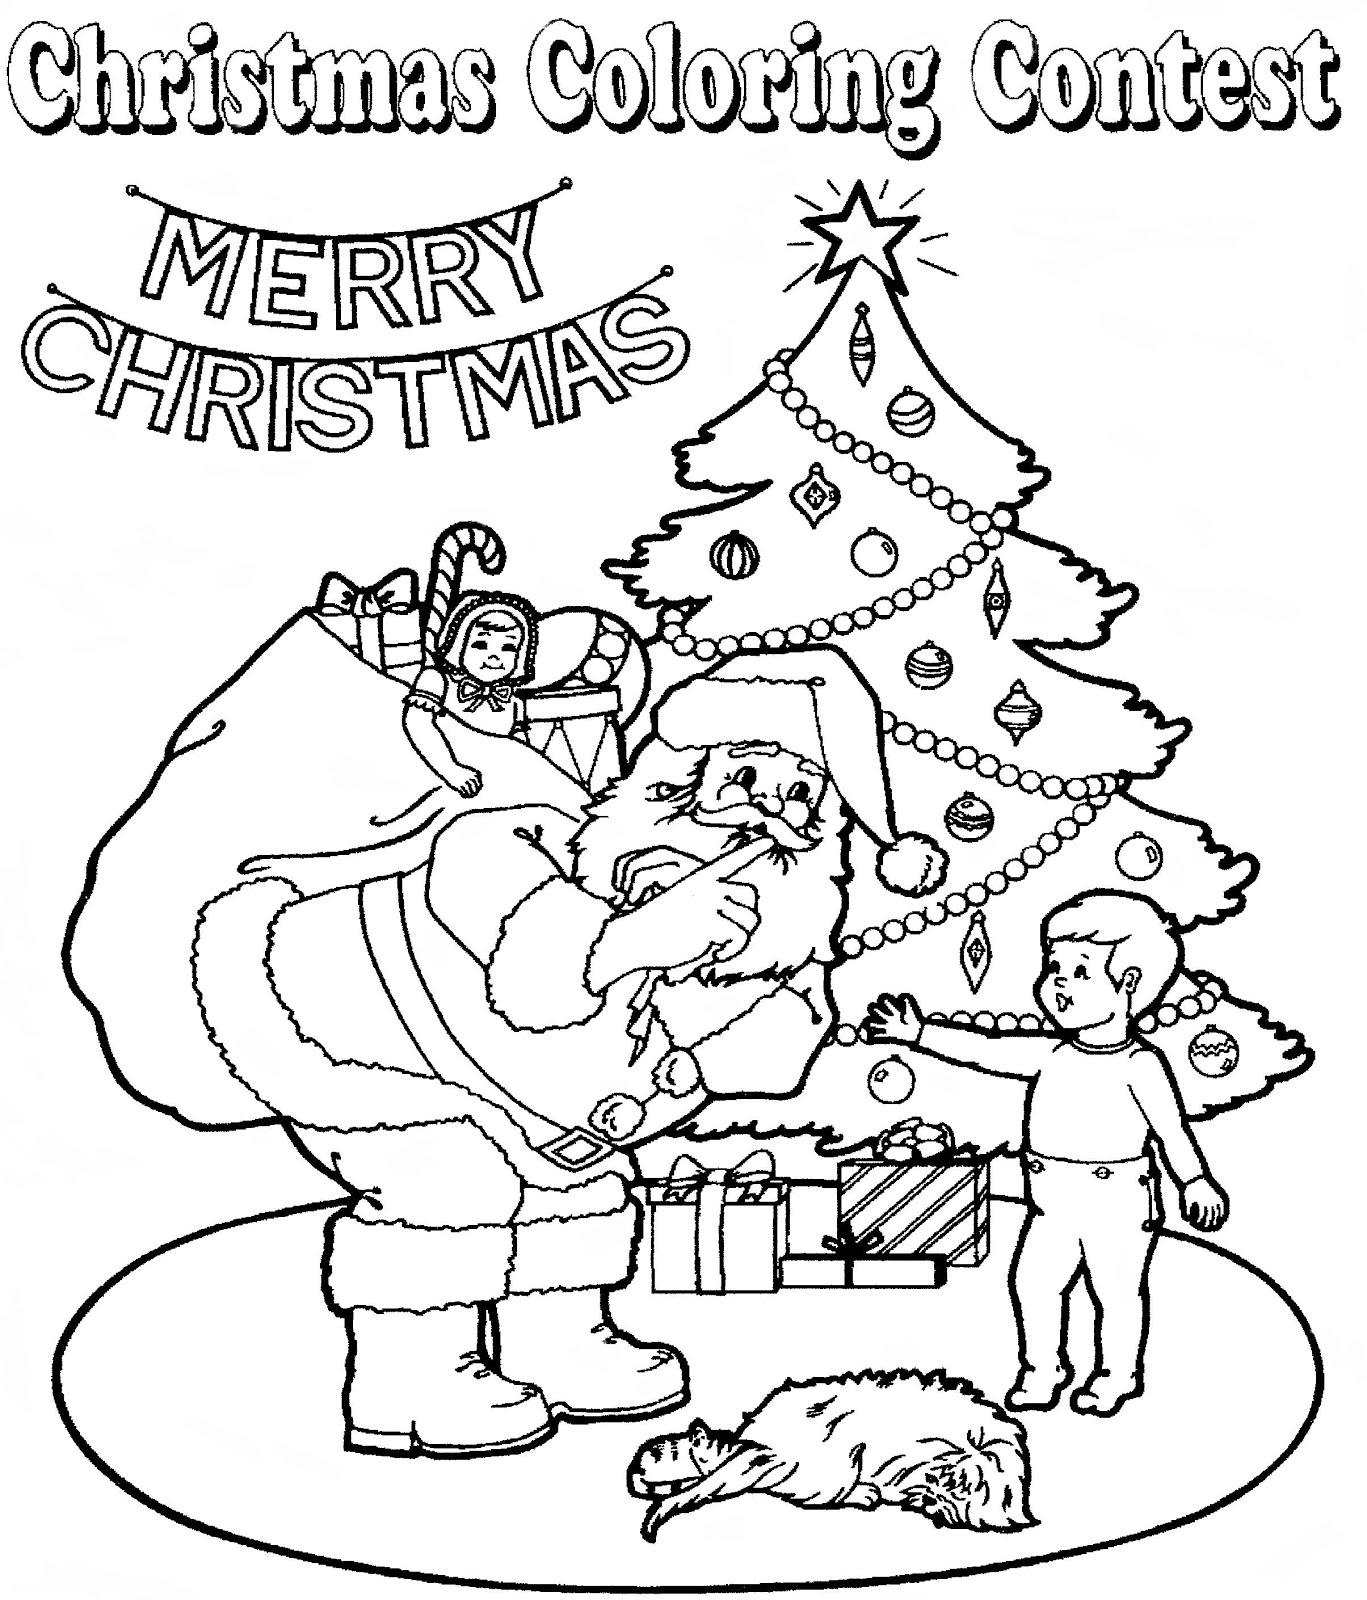 Mostly Paper Dolls Too Christmas Coloring Contest